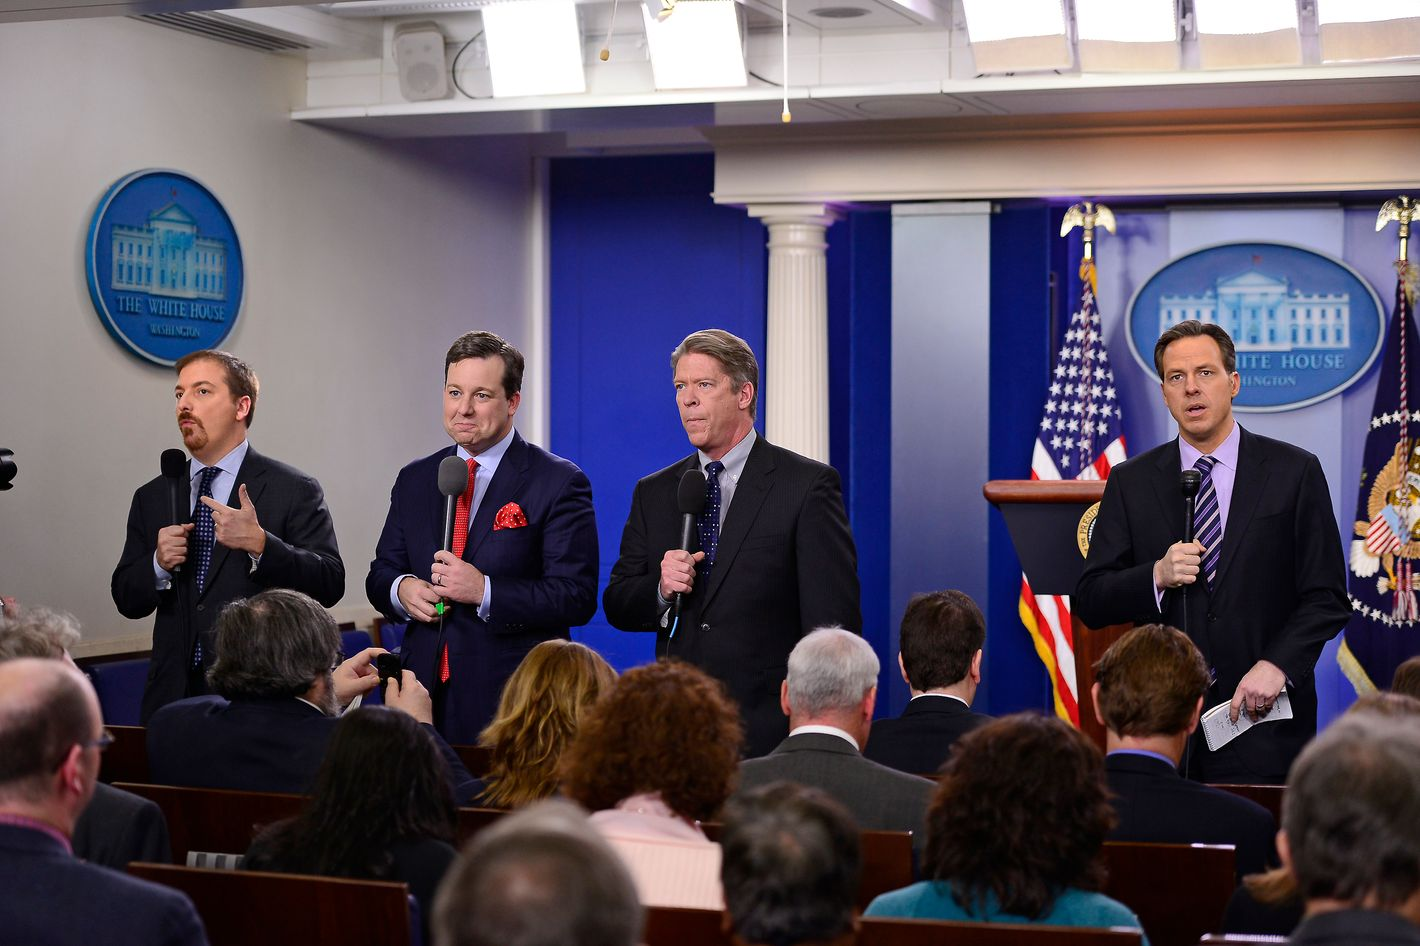 Chuck Todd of NBC News, left, Ed Henry of FOX News, second left, Major Garrett of CBS News, second right, and Jake Tapper of ABC News, right, do their stand-ups as they await the arrival of United States President Barack Obama, who will make a statement about how his administration will pursue a Weapons control policy in the wake of the Newtown tragedy in the Brady Press Briefing Room on Wednesday, December 19, 2012.  Vice President Joe Biden attended the announcement.